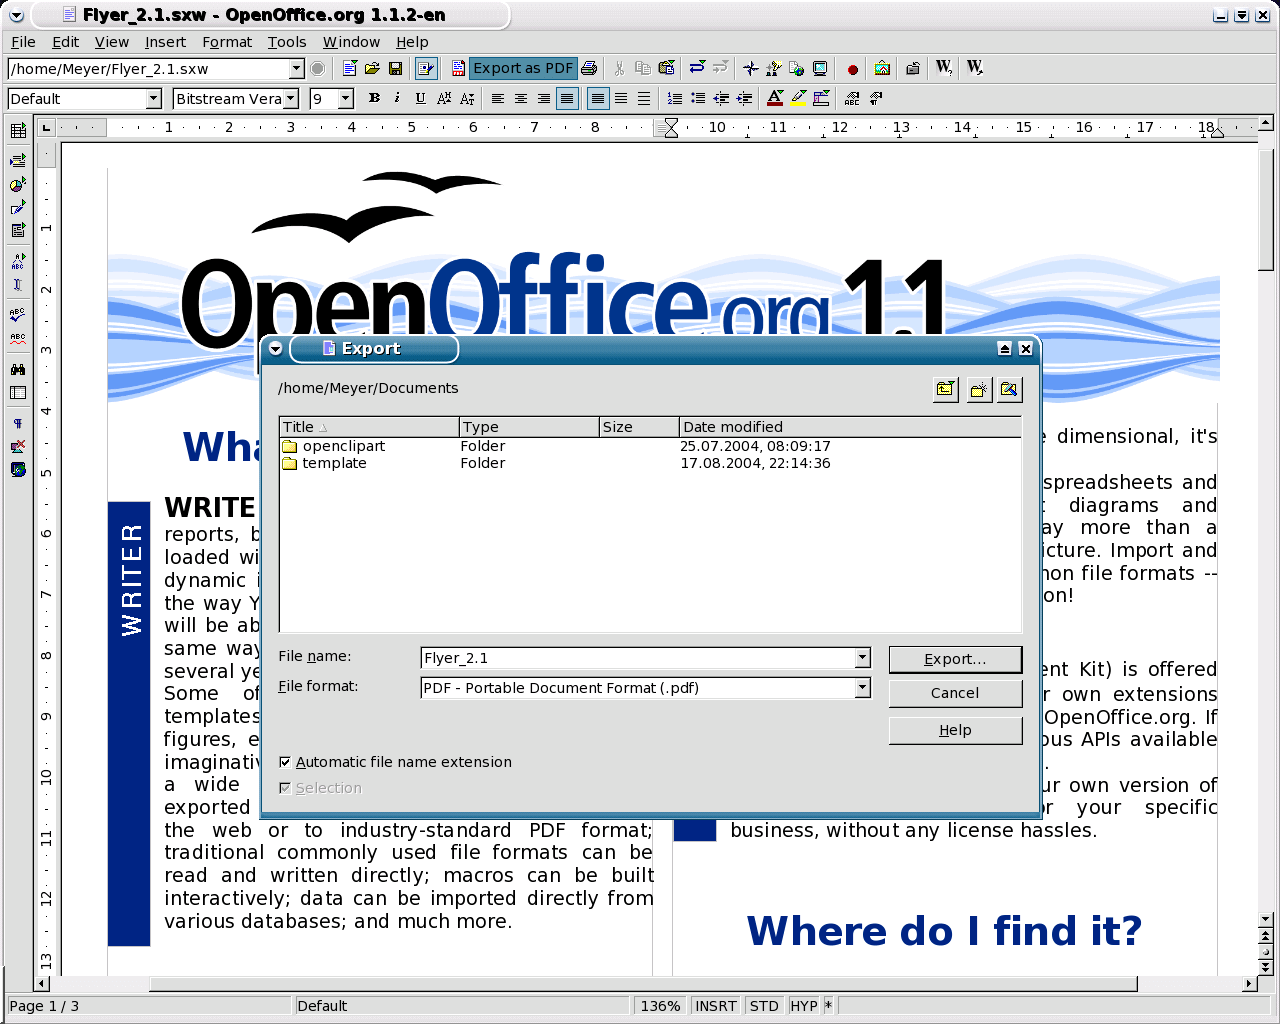 openoffice for windows 7 ultimate